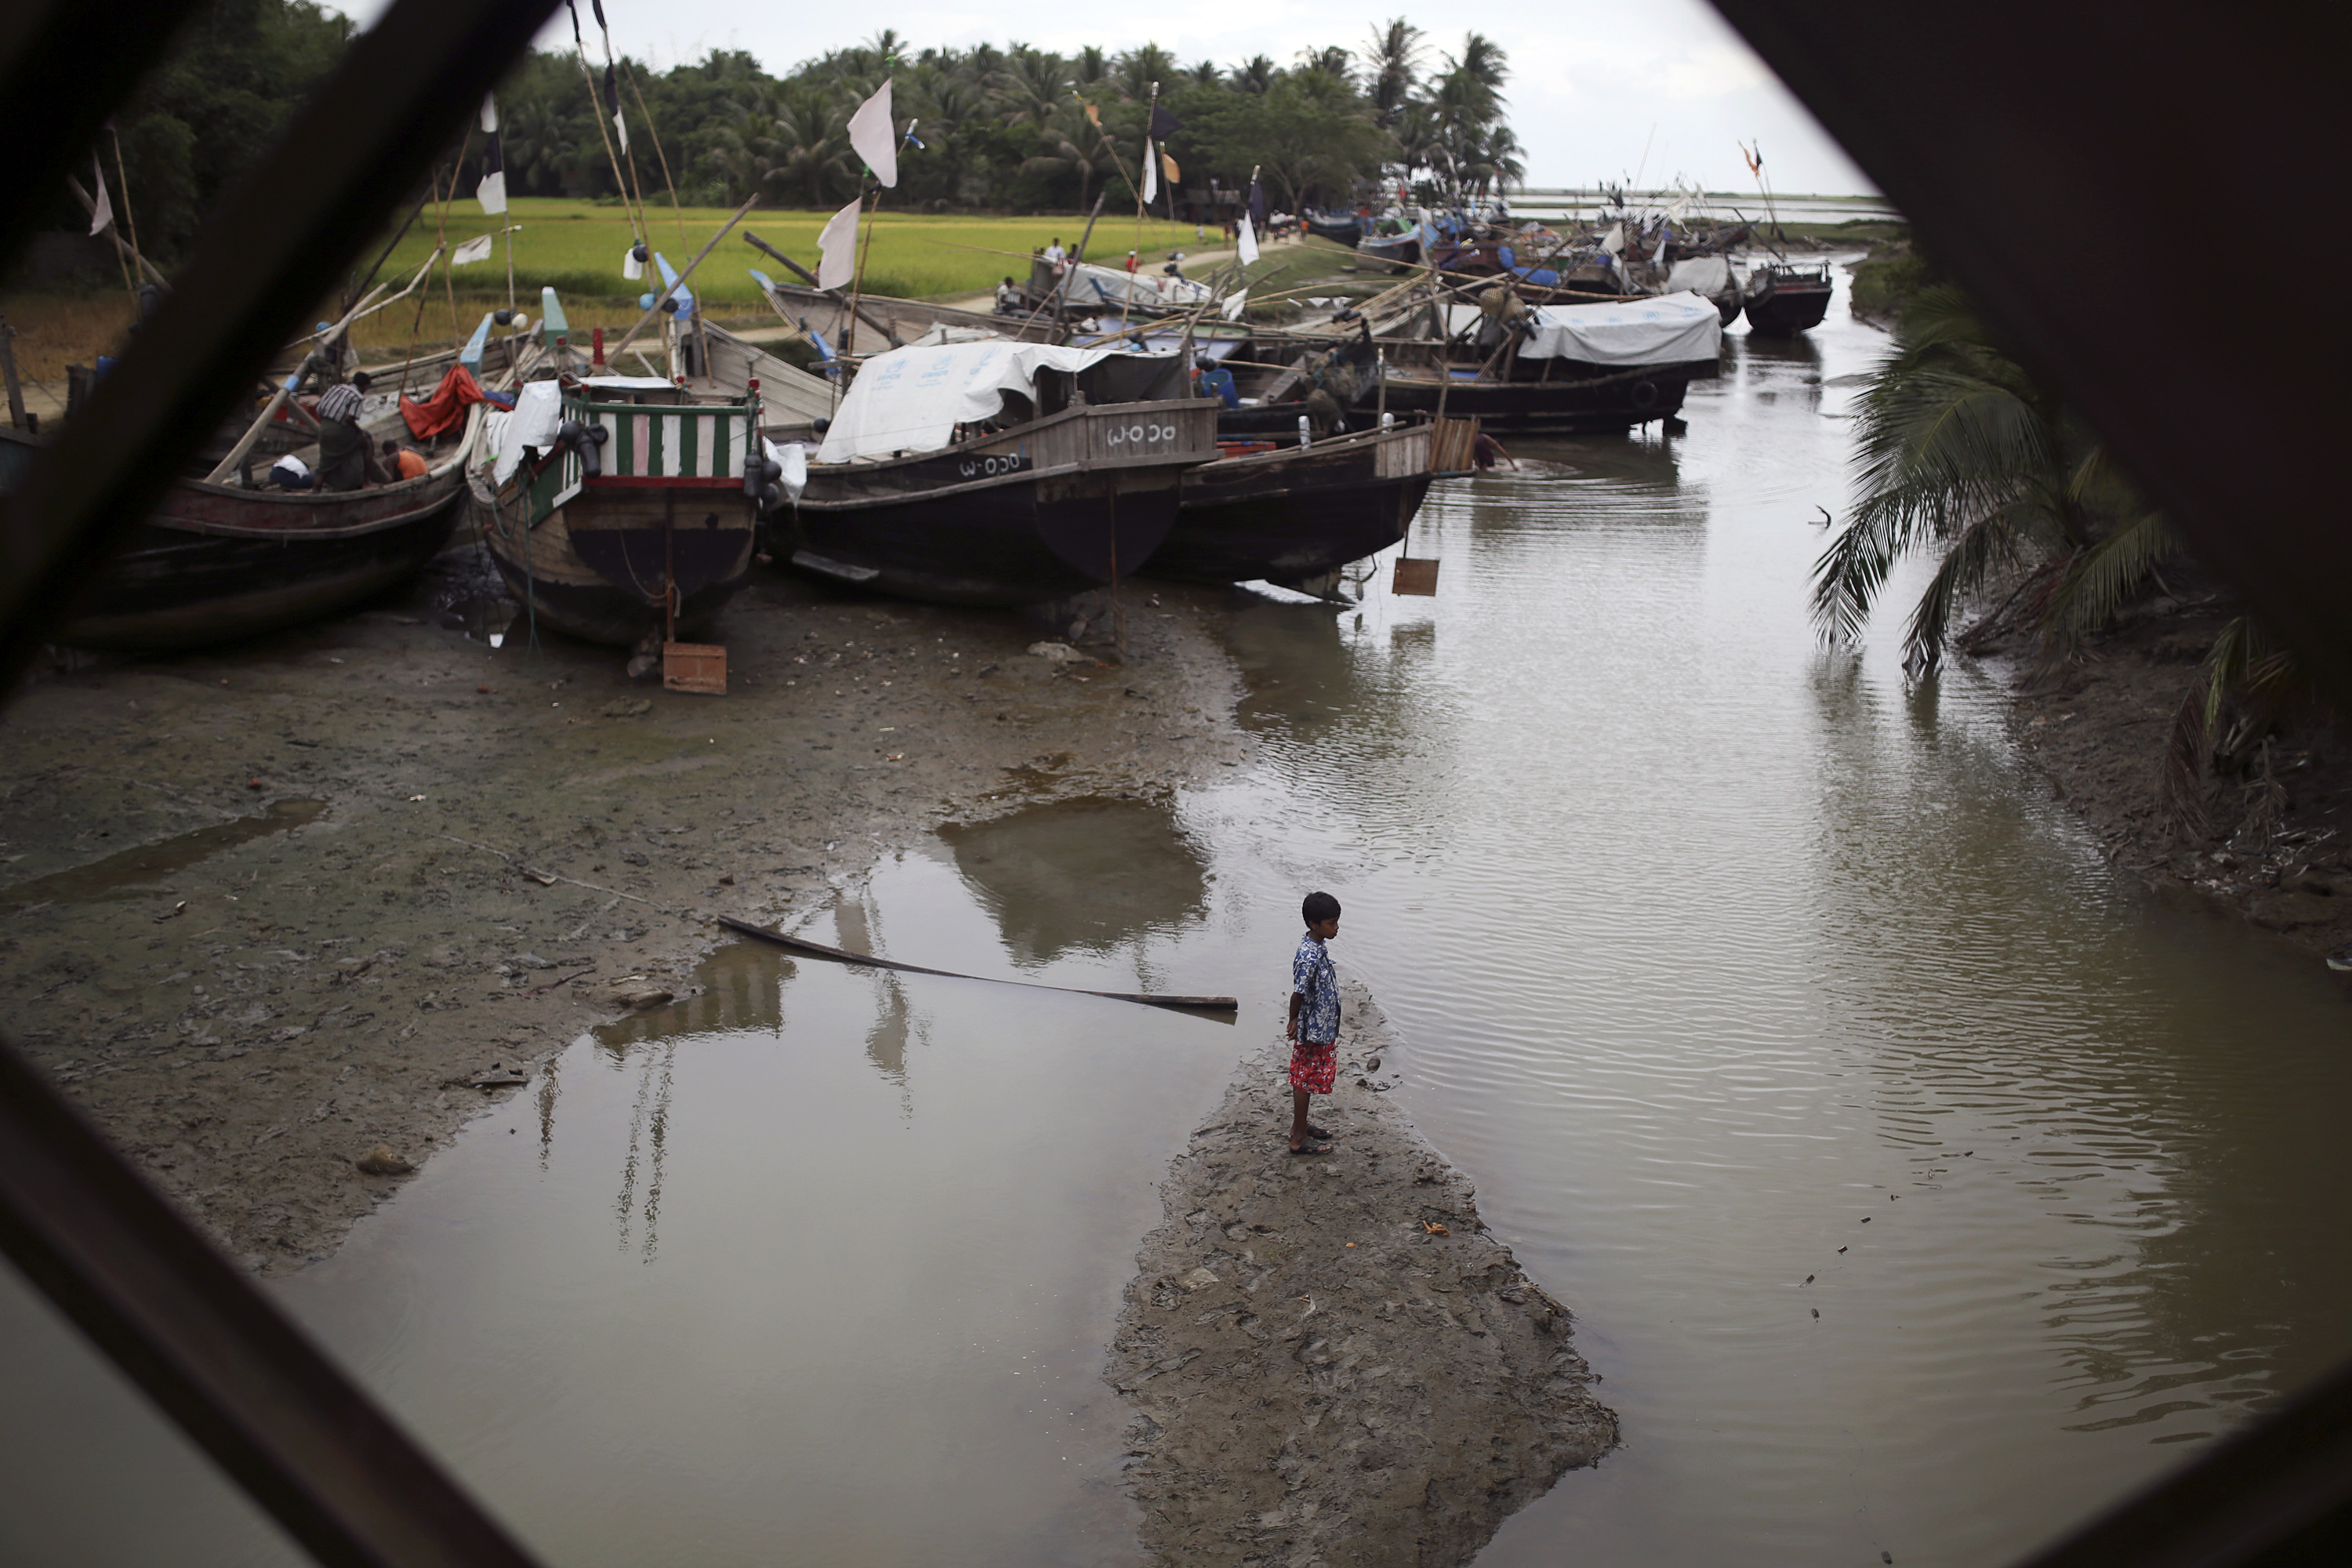 A boy stands on a sandbank near Rohingya fishermen working on their boats at Thae Chaung IDP camp outside Sittwe, Arakan State, on 7 November 2014. (Photo: Reuters)